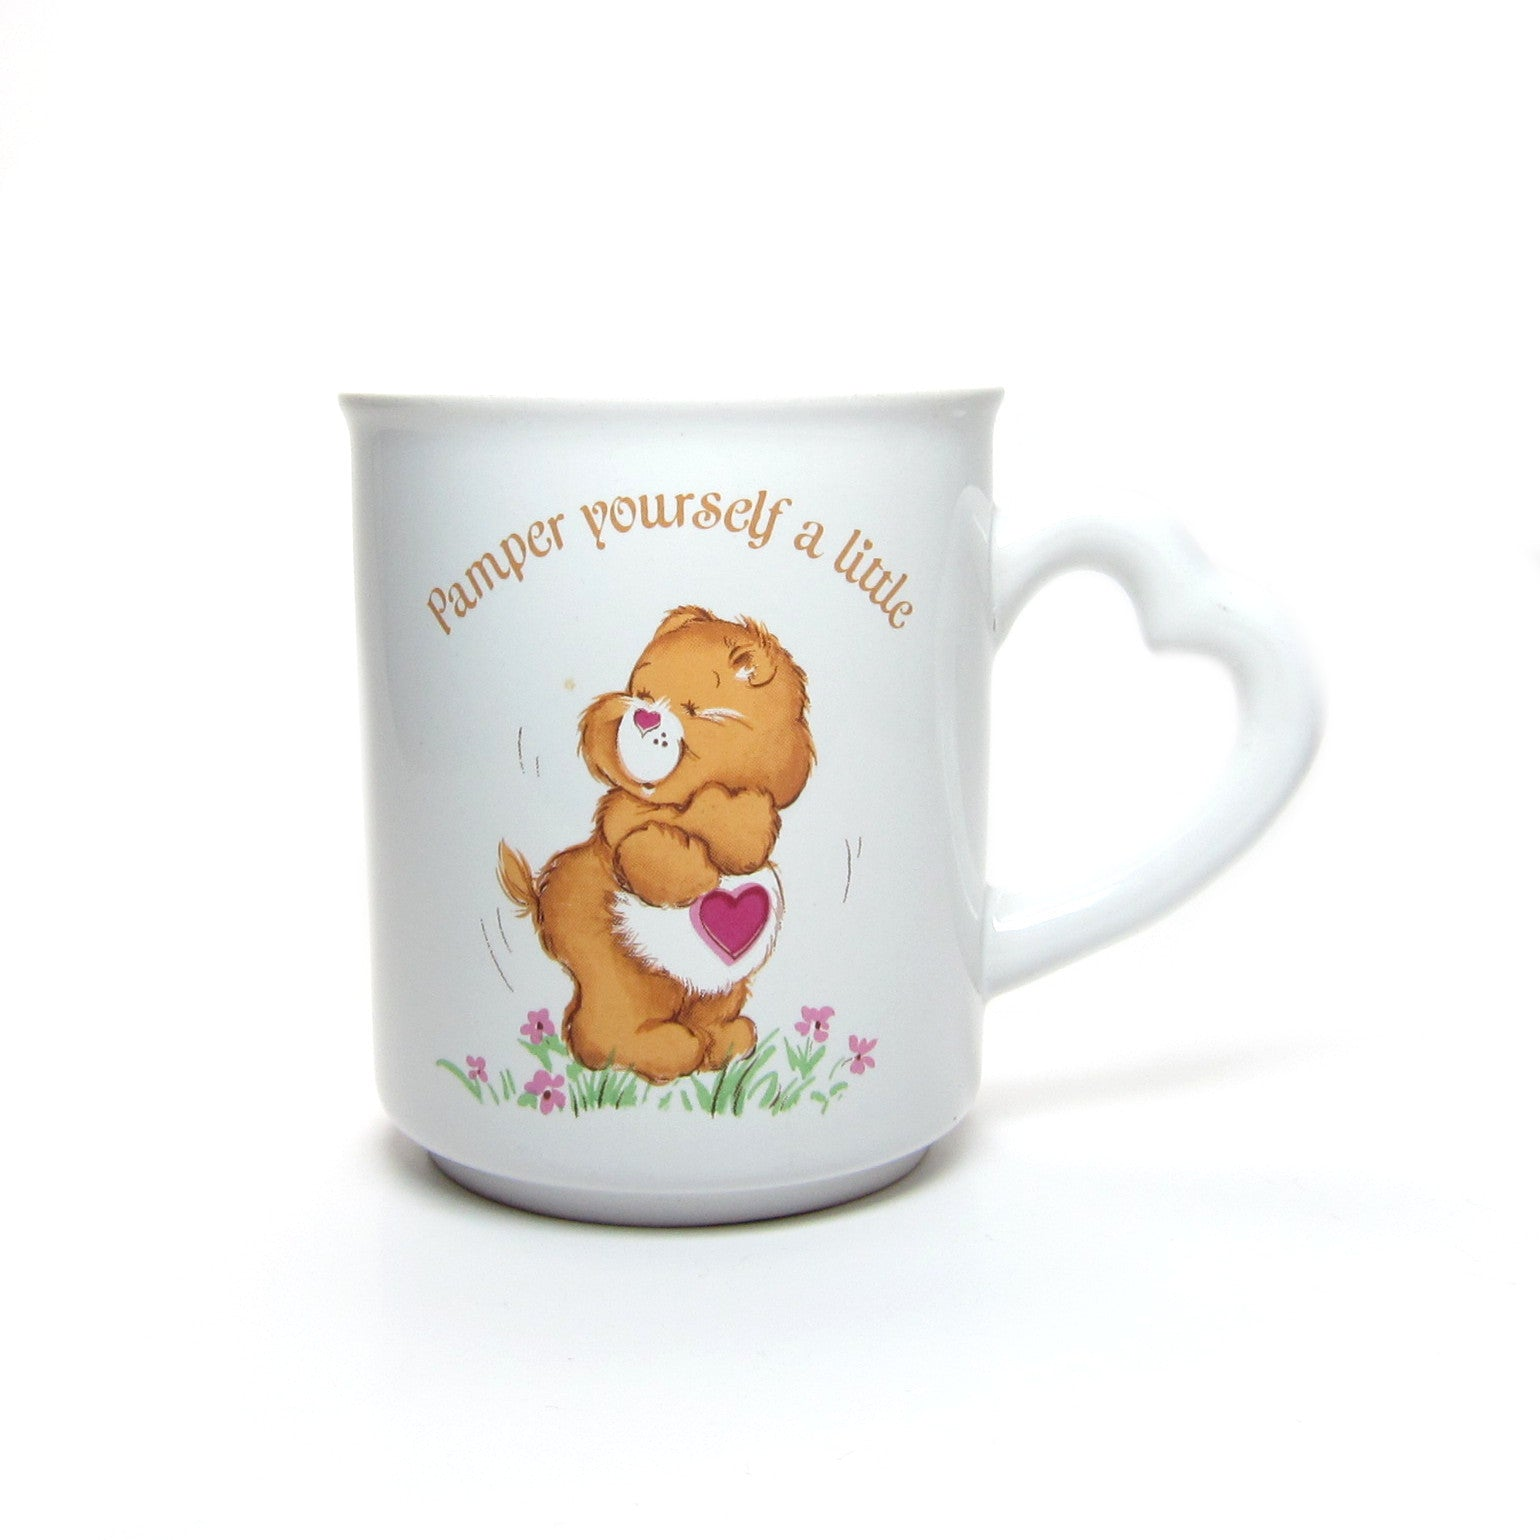 Care Bears Mug Tenderheart Bear - Pamper Yourself a Little